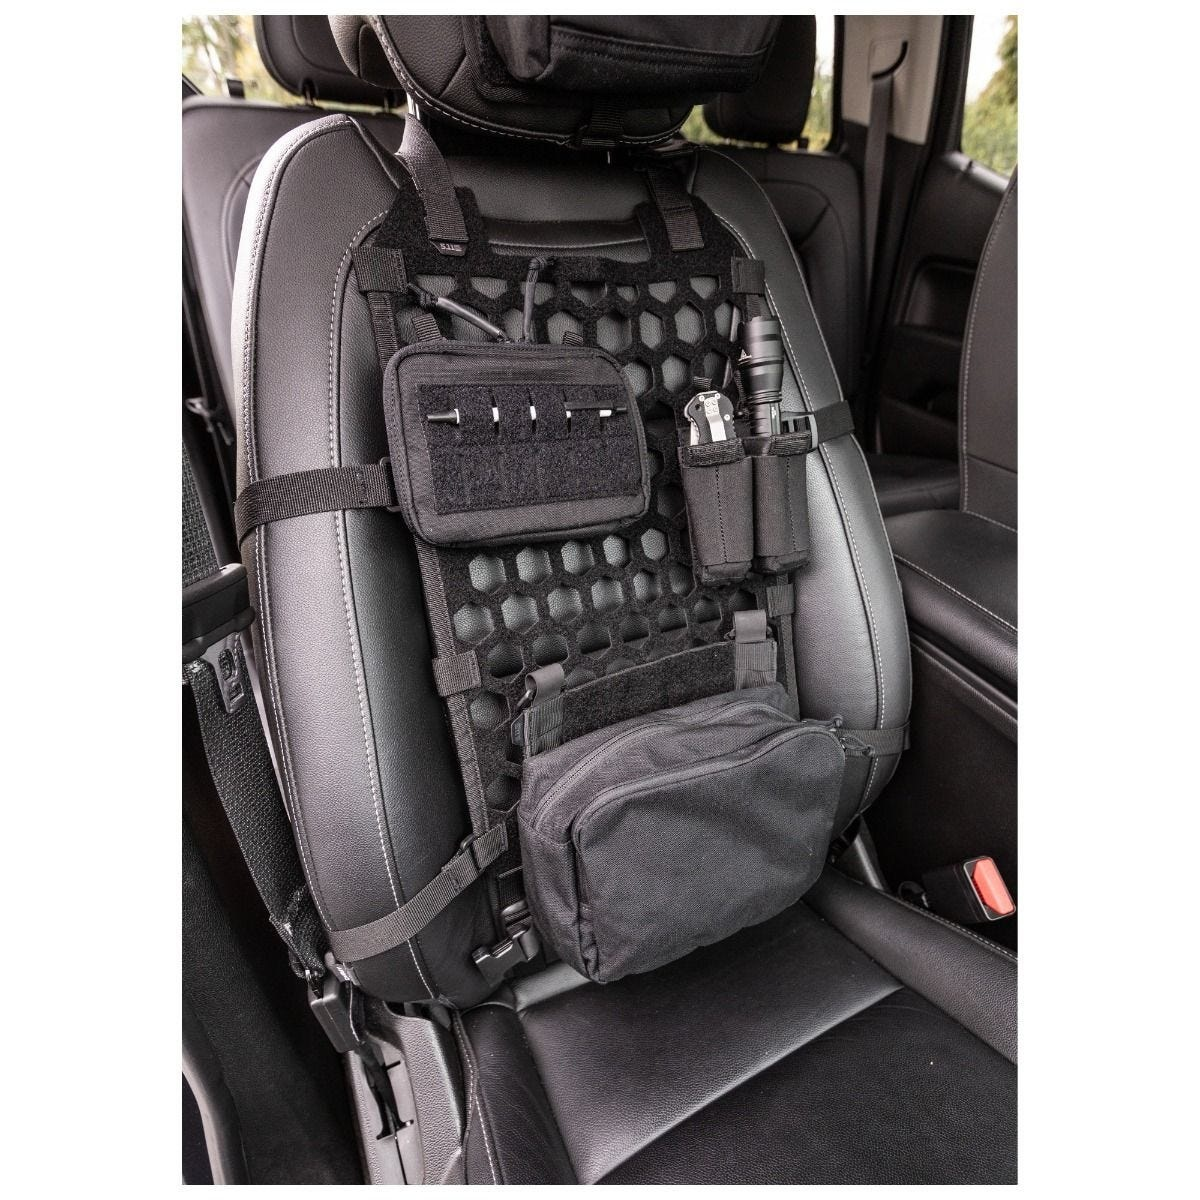 5.11 Tactical 5.11 Tactical Vehicle Ready Hexgrid® Seat Platform